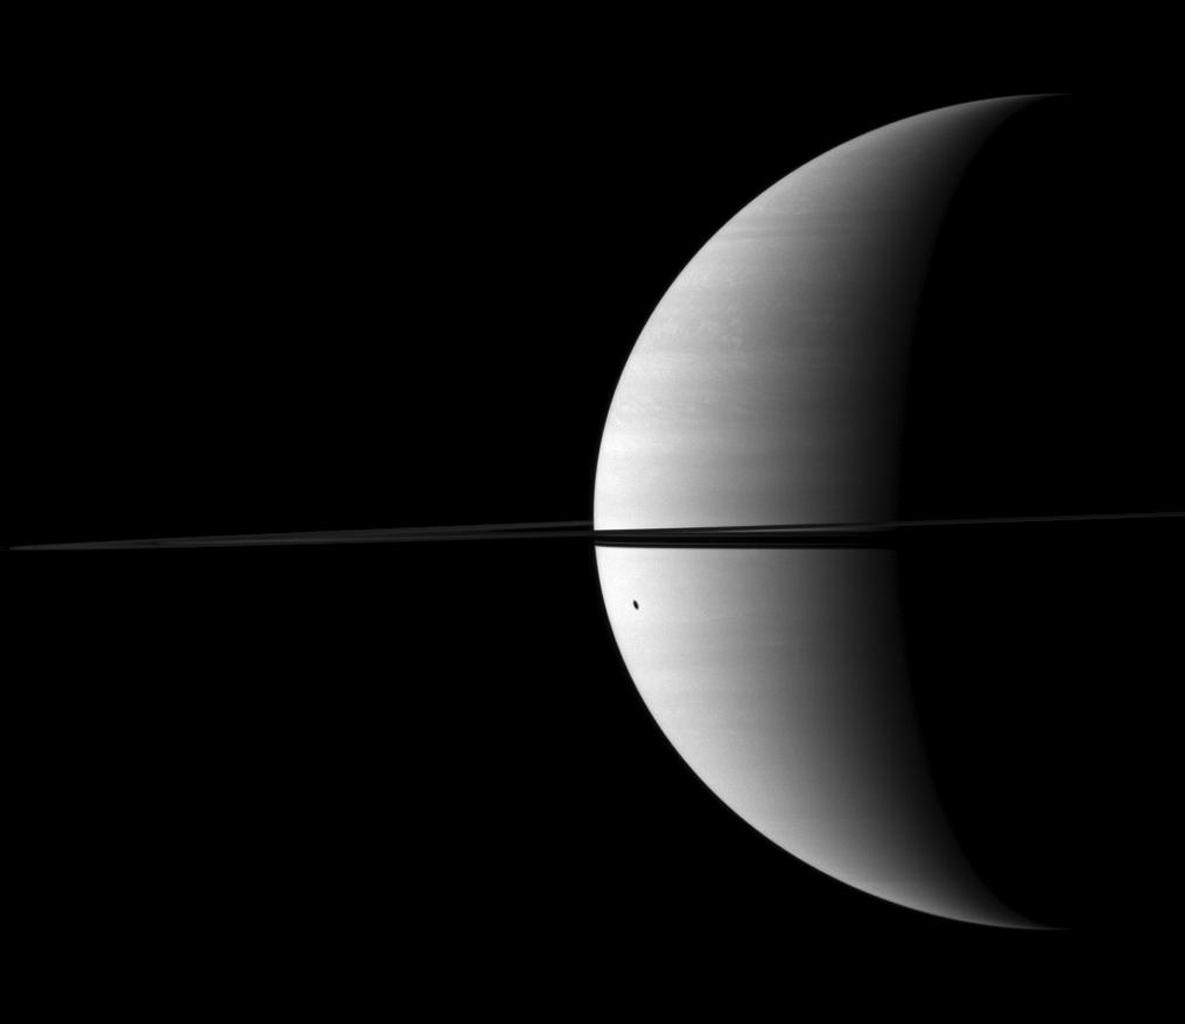 Dione's shadow is elongated as it is cast onto the round shape of Saturn in this image taken by NASA's Cassini spacecraft. The moon is not visible here. This view looks toward the northern, sunlit side of the rings from just above the ringplane.